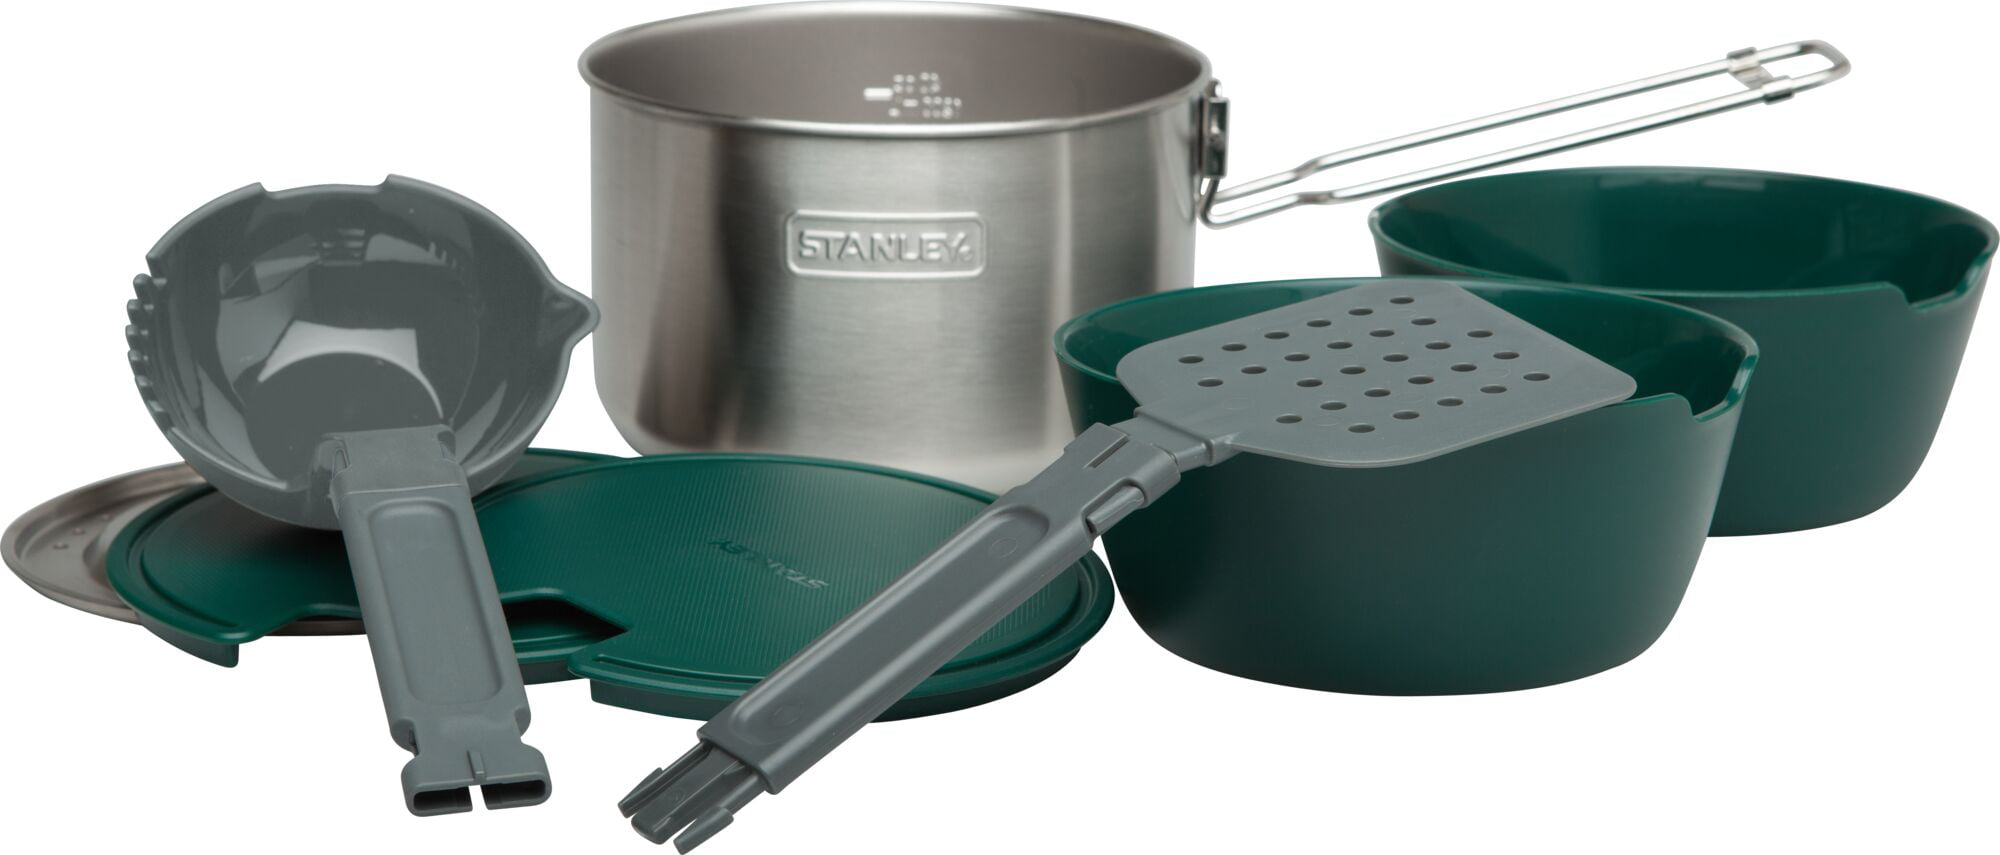 Stanley 1.5L Adventure All-In-One Two Bowl Cook Set Stainless Steel